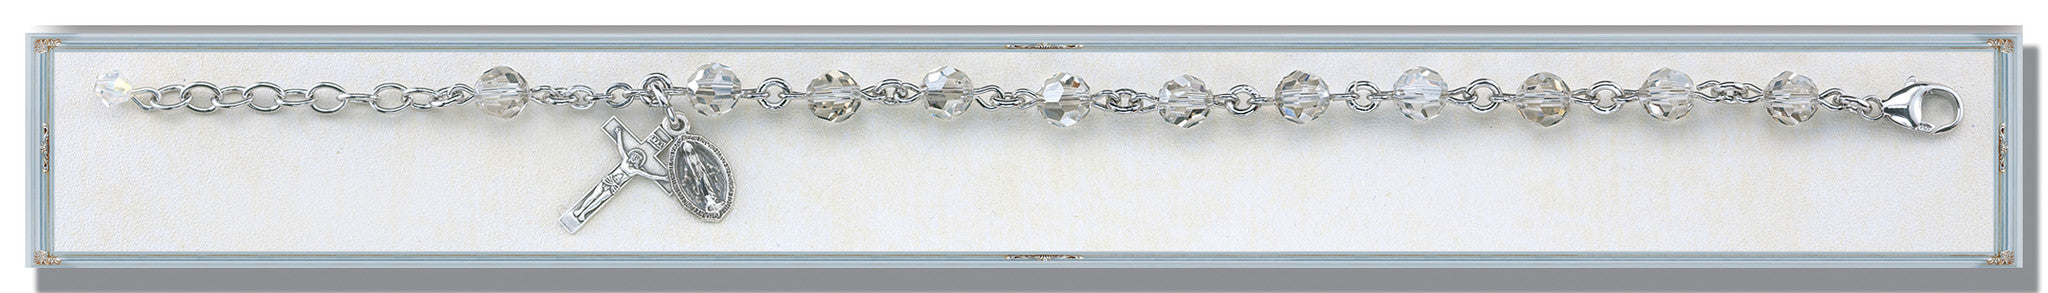 smoked_crystal_round_sterling_bracelet